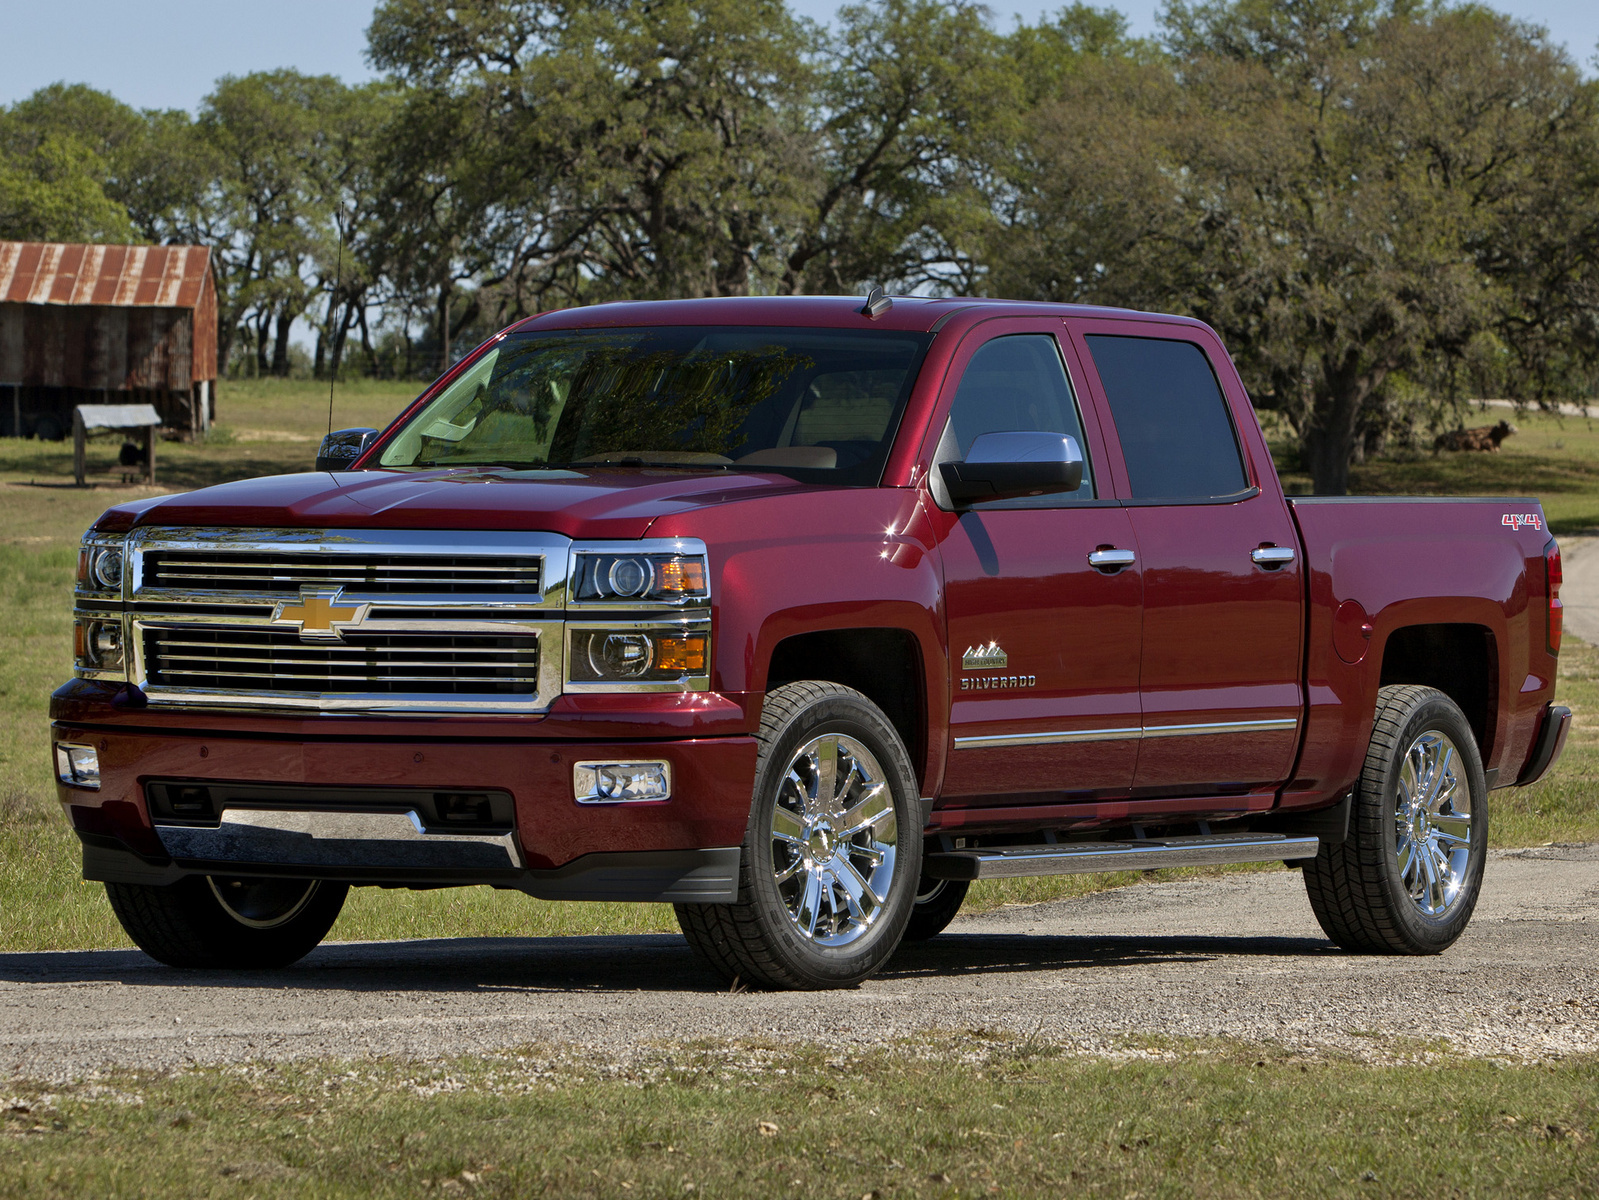 2014 chevrolet silverado 1500 overview cargurus. Black Bedroom Furniture Sets. Home Design Ideas